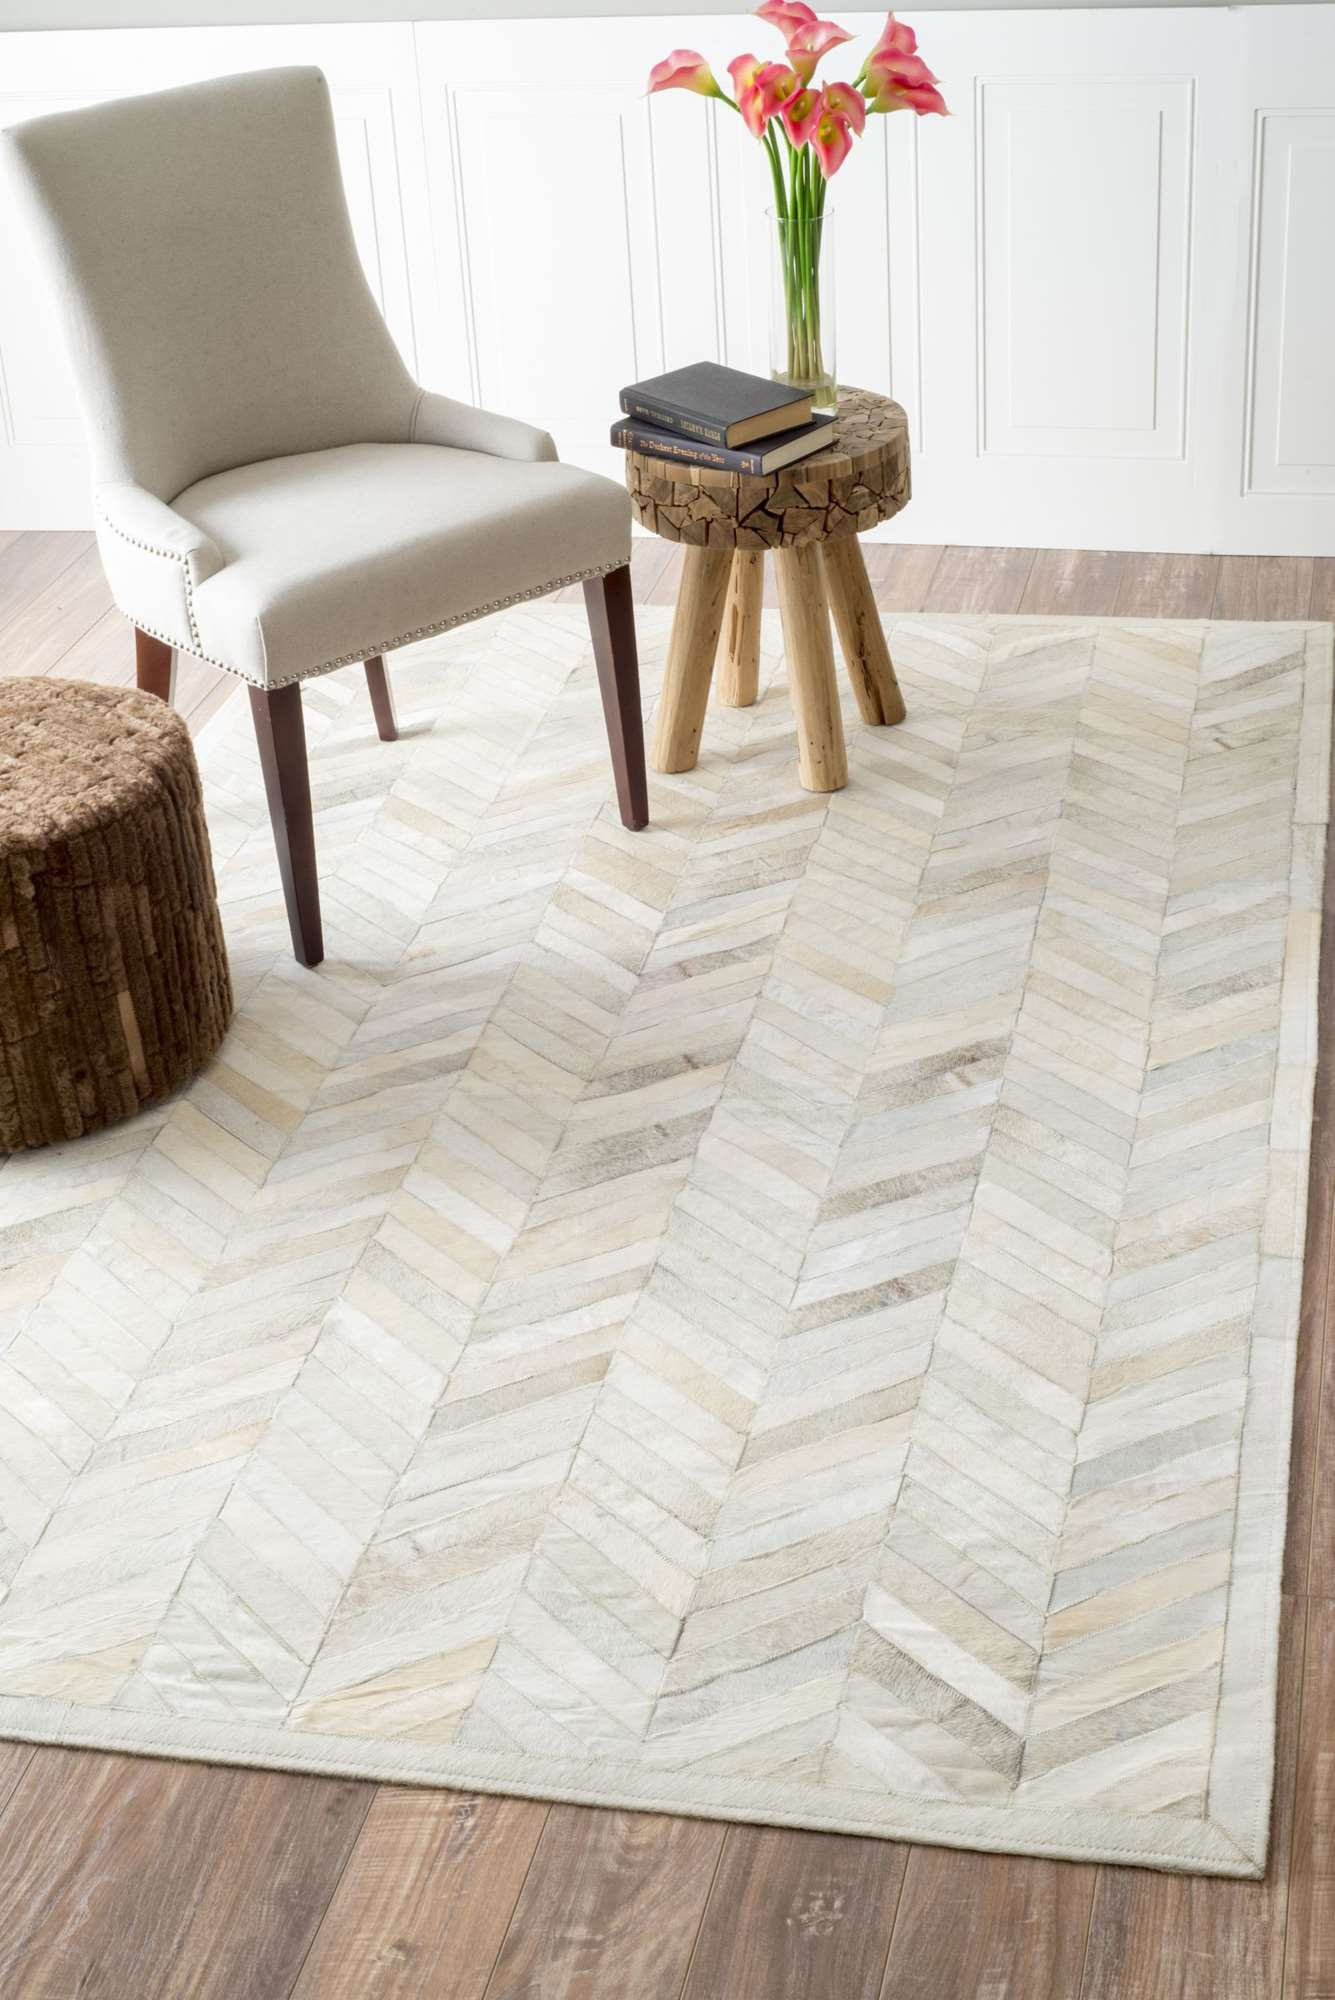 Pottery Barn Kids Chevron Rug | Beige and White Chevron Rug | Chevron Rug